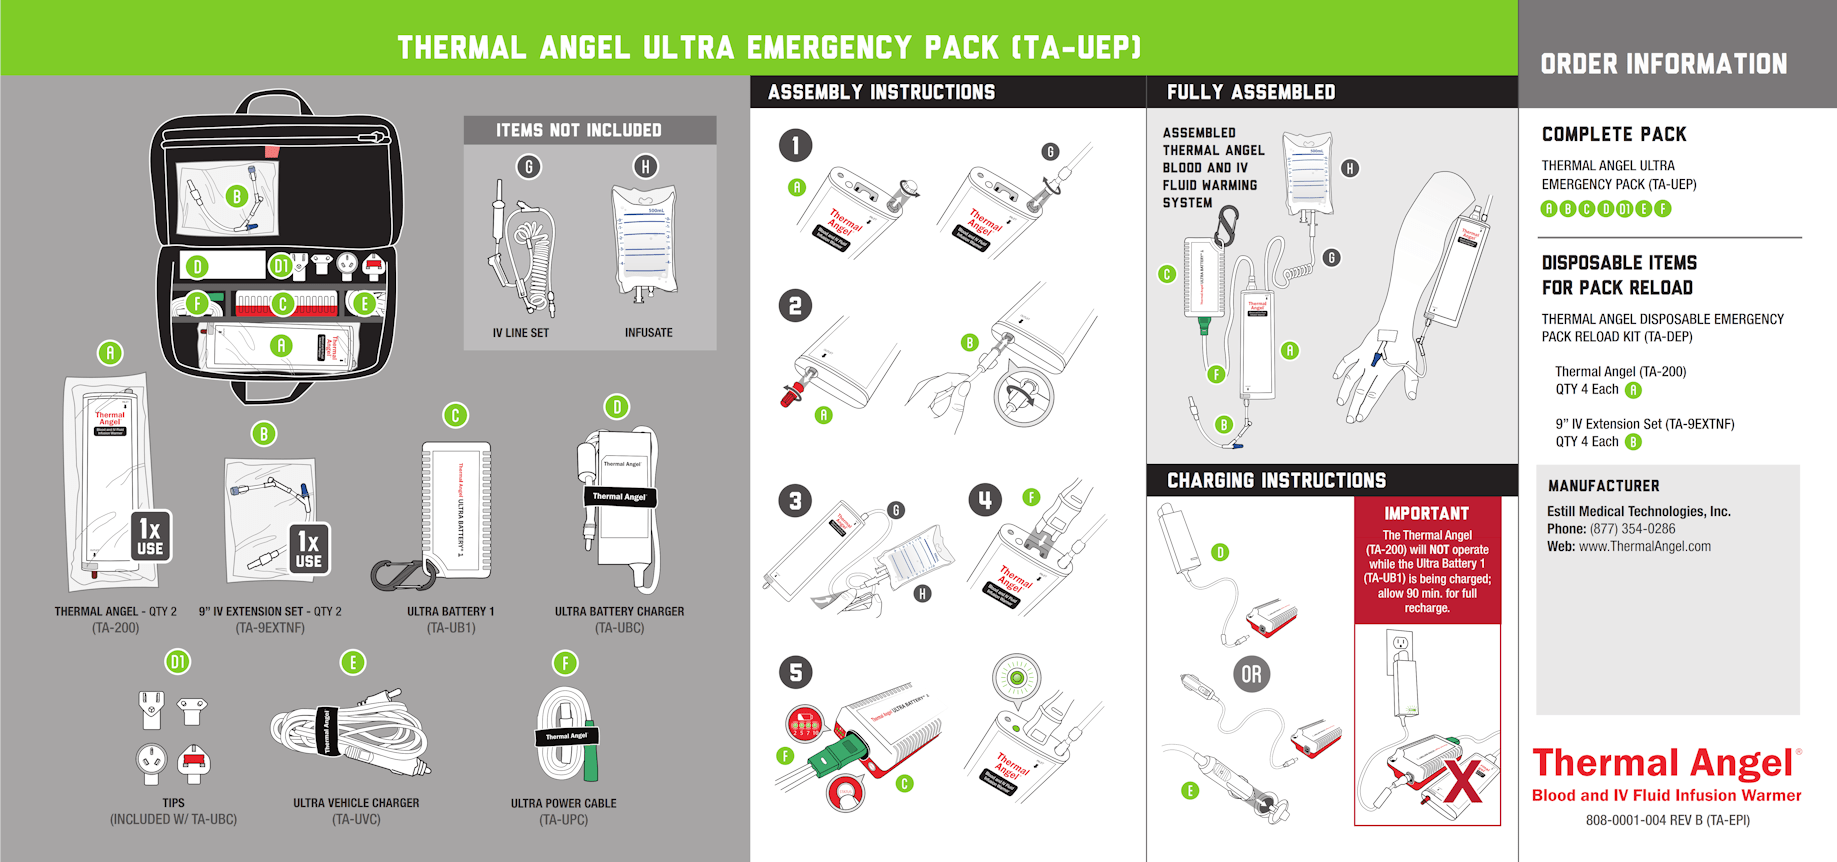 Thermal Angel Ultra Emergency Pack Instructions